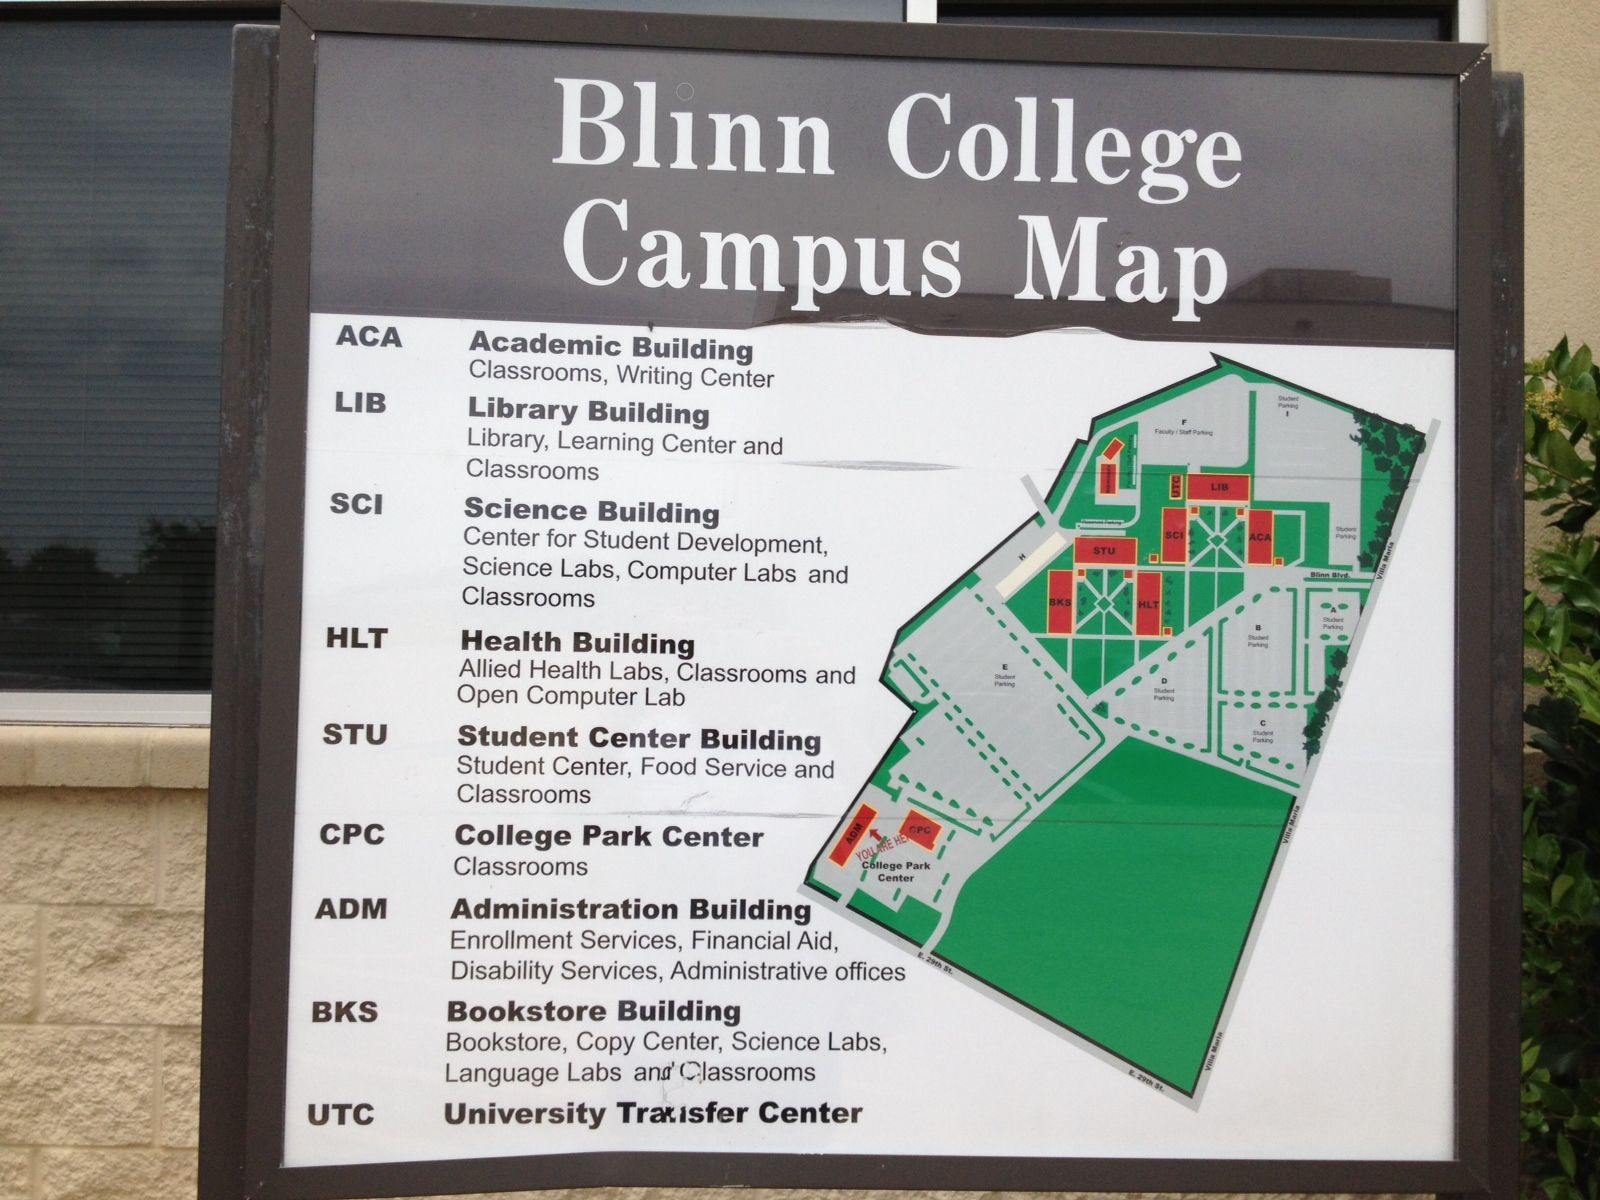 Blinn Bryan Campus Map 21 College Visits in 21 Days | Facebook | College visit, College